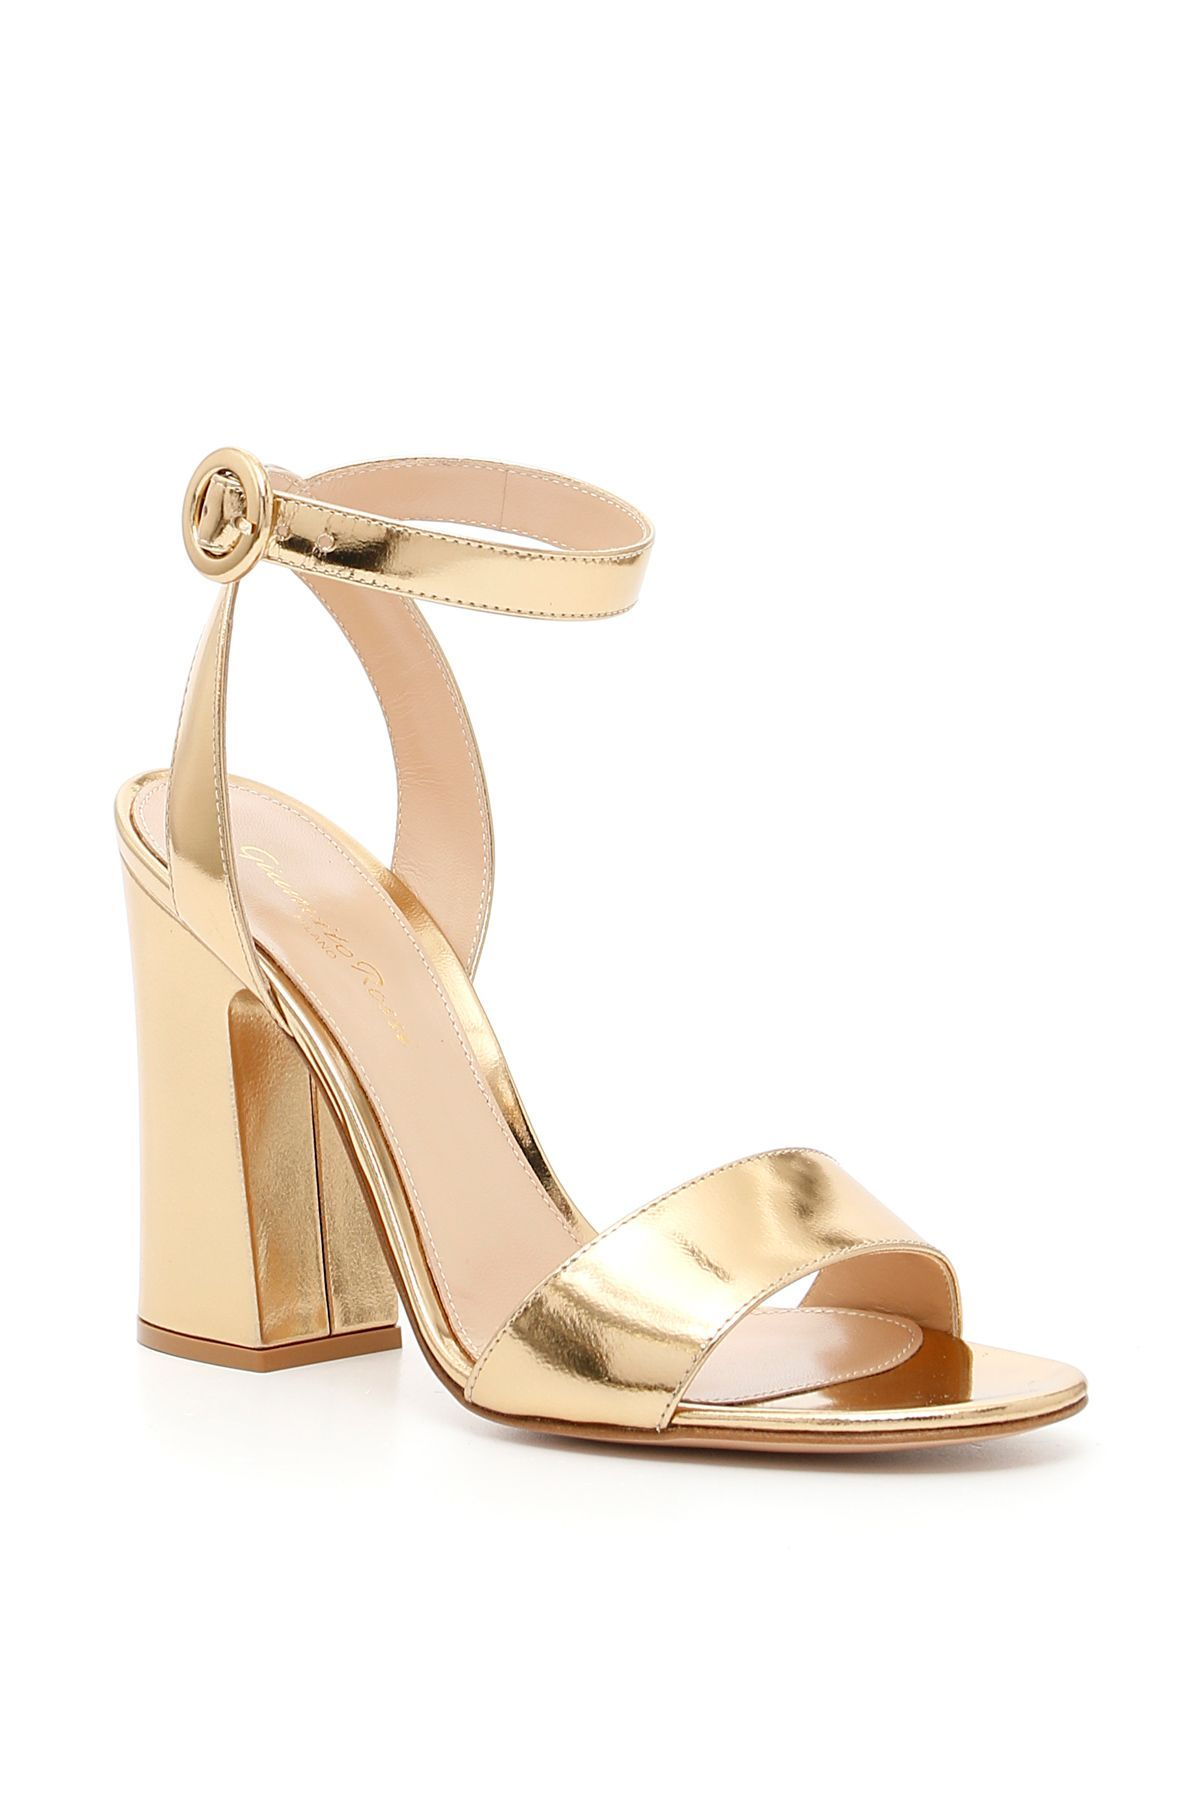 Gianvito Rossi Tandi Metallic Leather Ankle Strap Block Heel Sandals In Gold Modesens Ankle Strap Block Heel Block Heels Sandal Sandals Heels